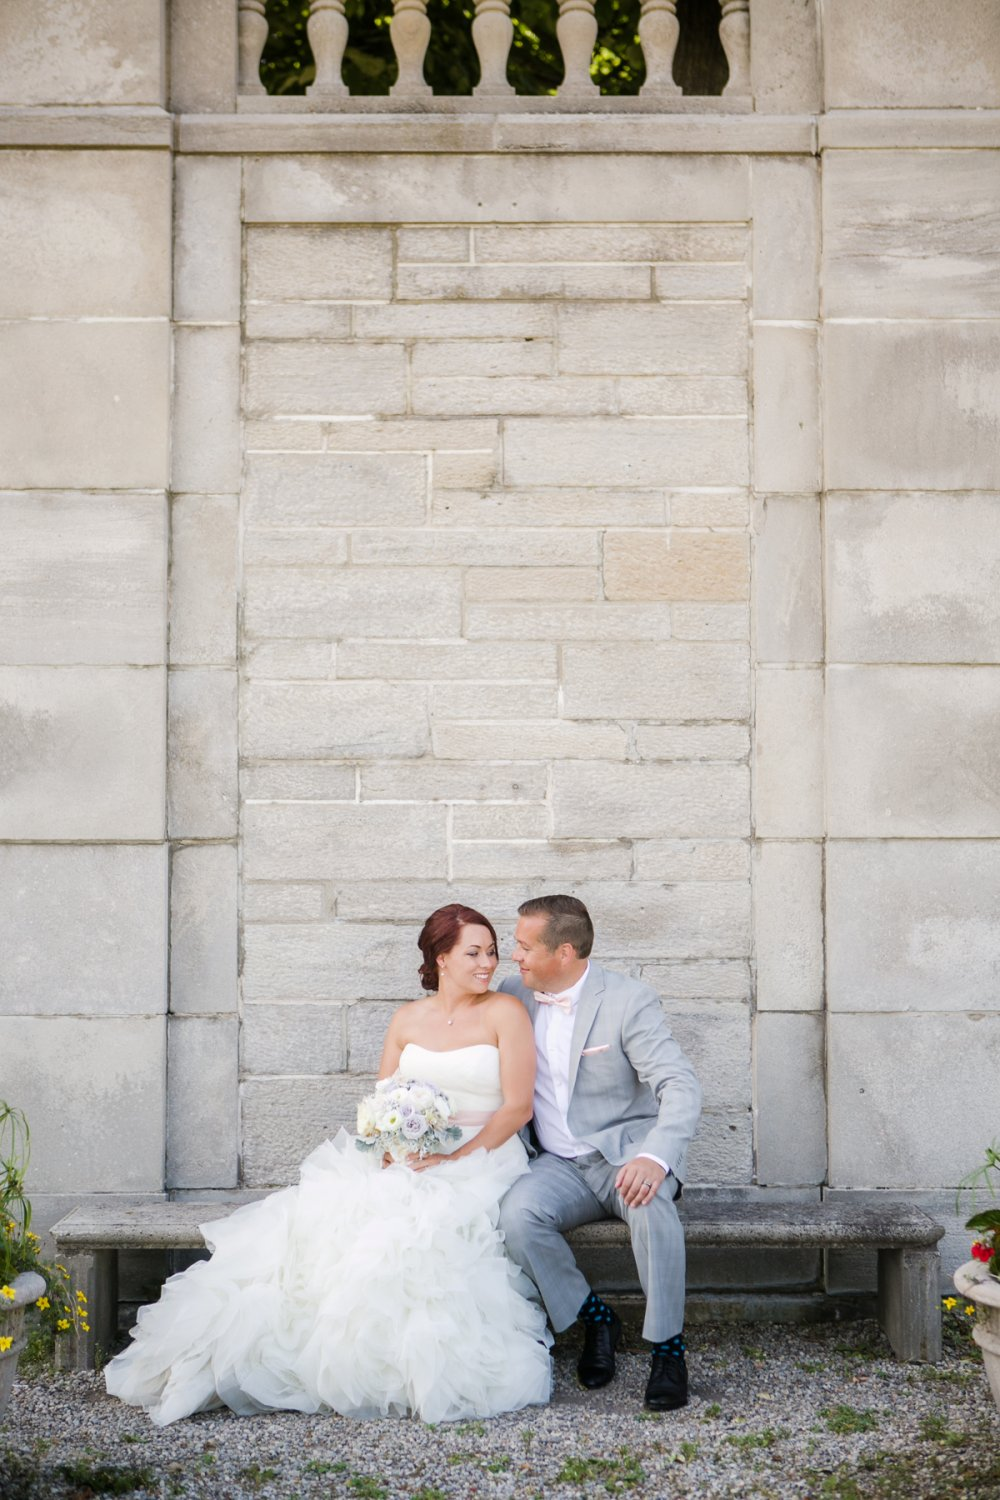 JF Hannigan Wedding Photography: Aaron and Brianna: a world together 51